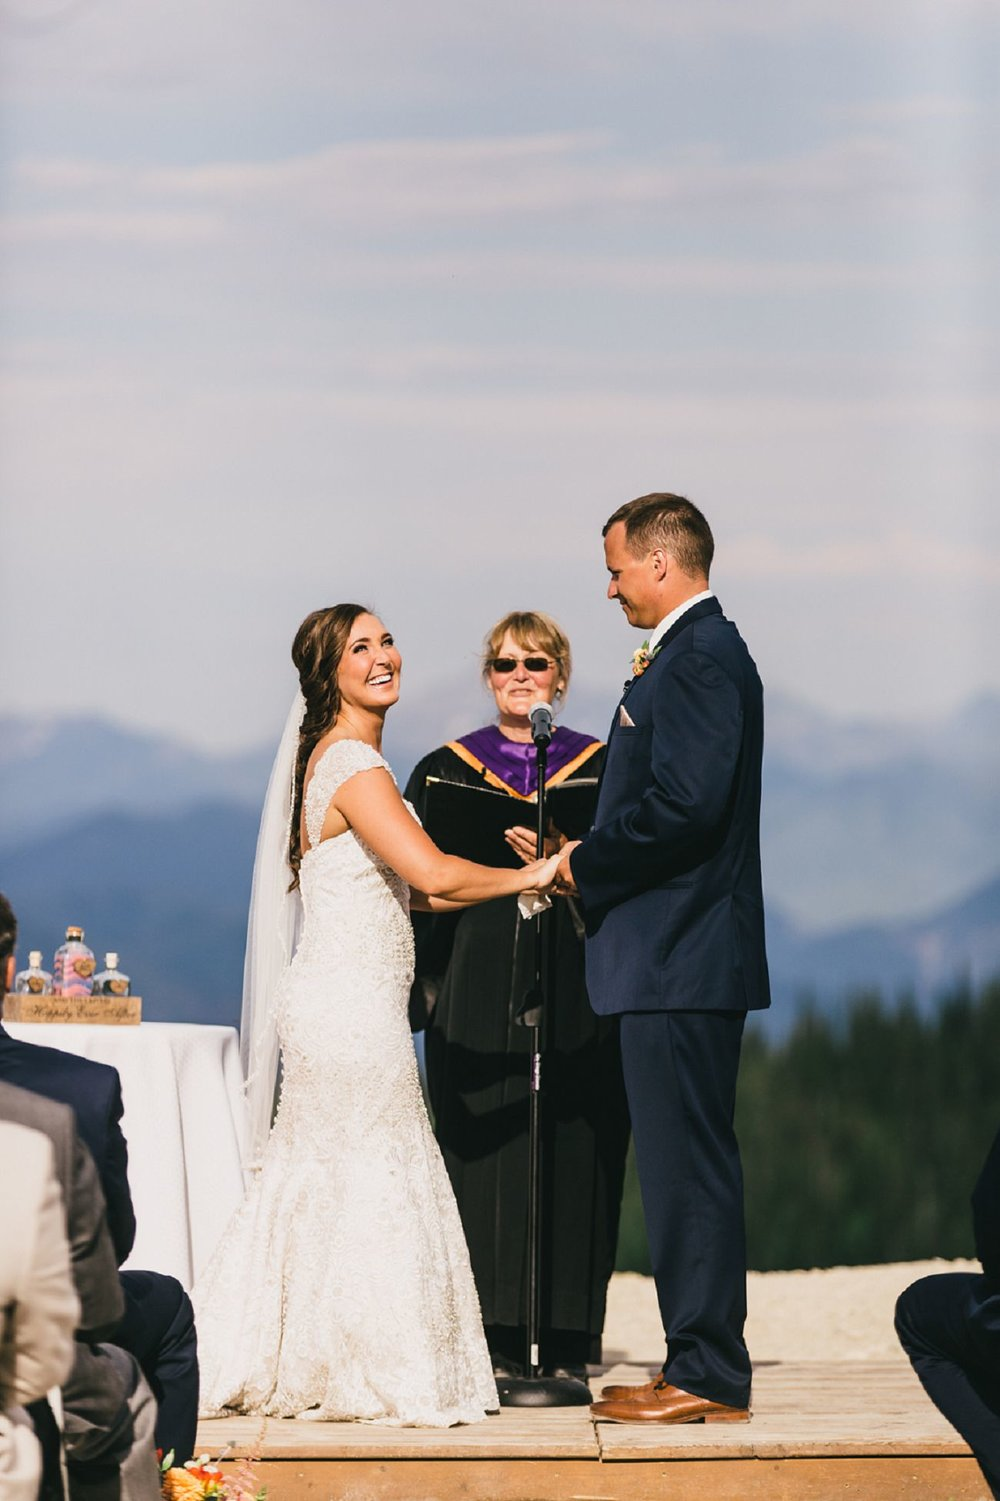 a romantic wedding at whitefish mountain resort | logan & kelsey